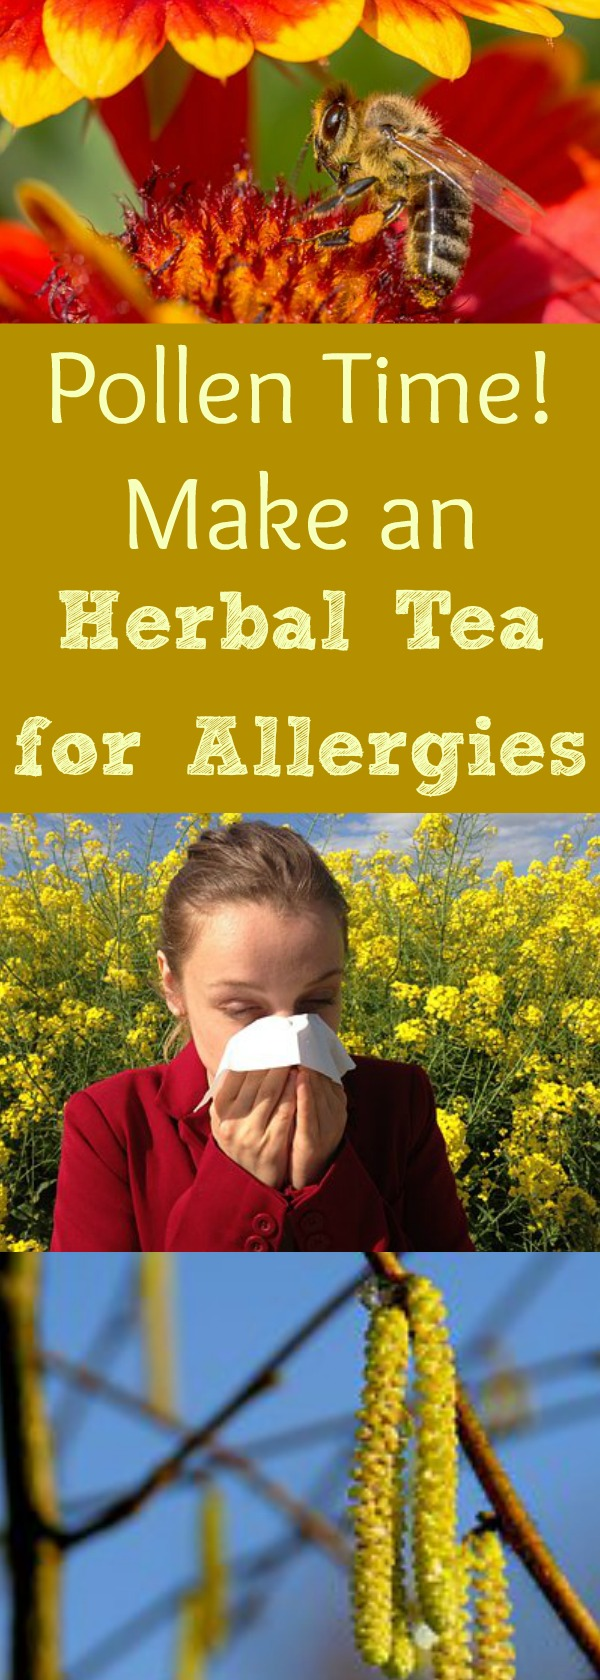 It's officially allergy season, and the pollen is rockin' & rollin' out there-- causing sinus inflammation and stuffy runny noses everywhere! Here's an herbal tea you can make for your family that will soothe and calm those allergies! #allergytea #teaforallergy #decongestant #getridof #sniffles #healingharvesthomestead